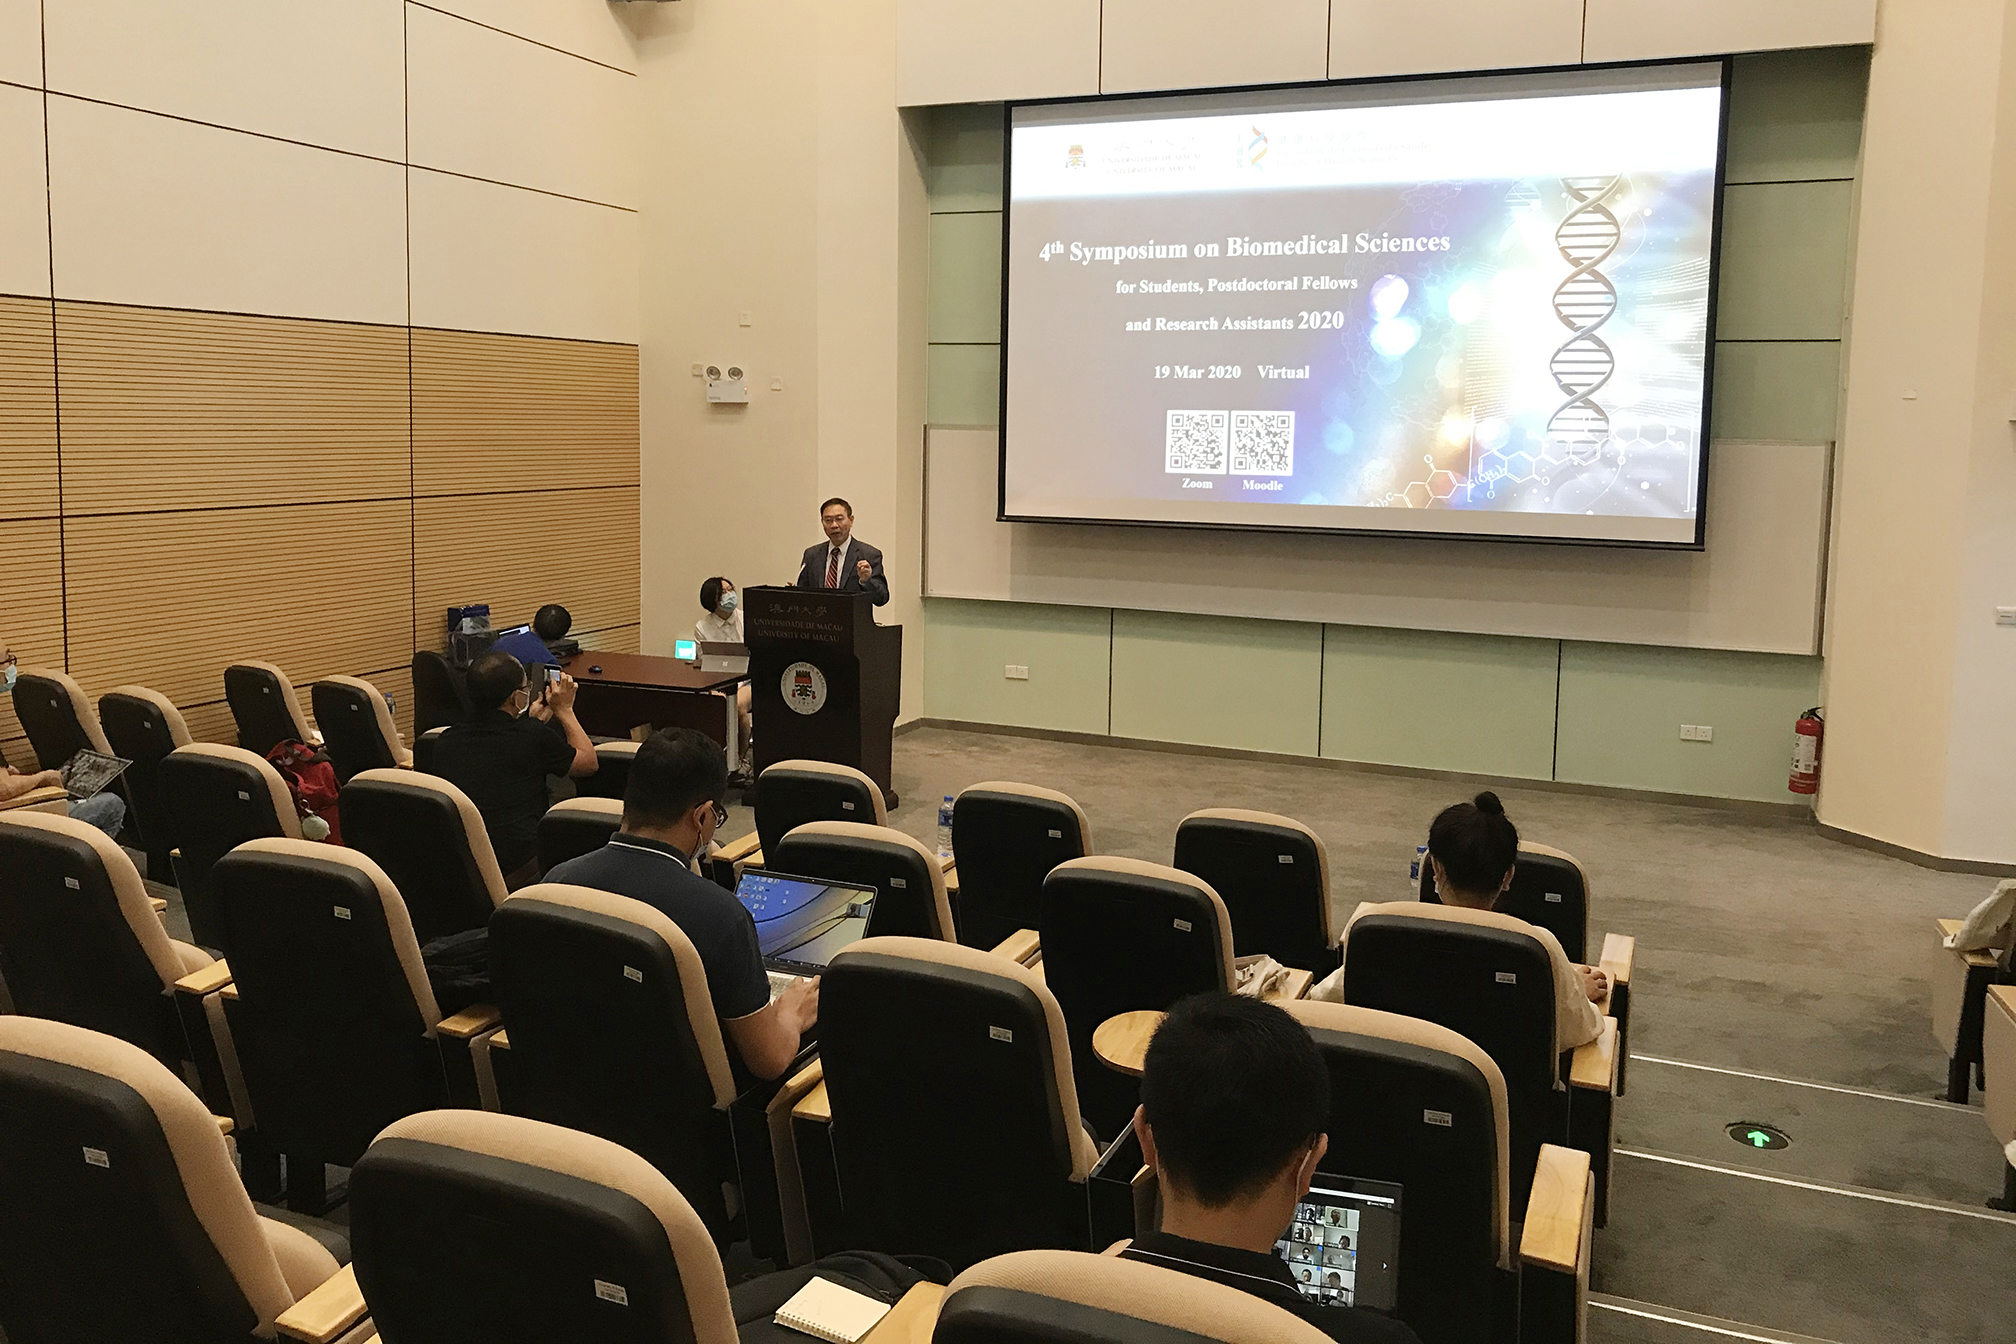 UM holds an online symposium on biomedical sciences